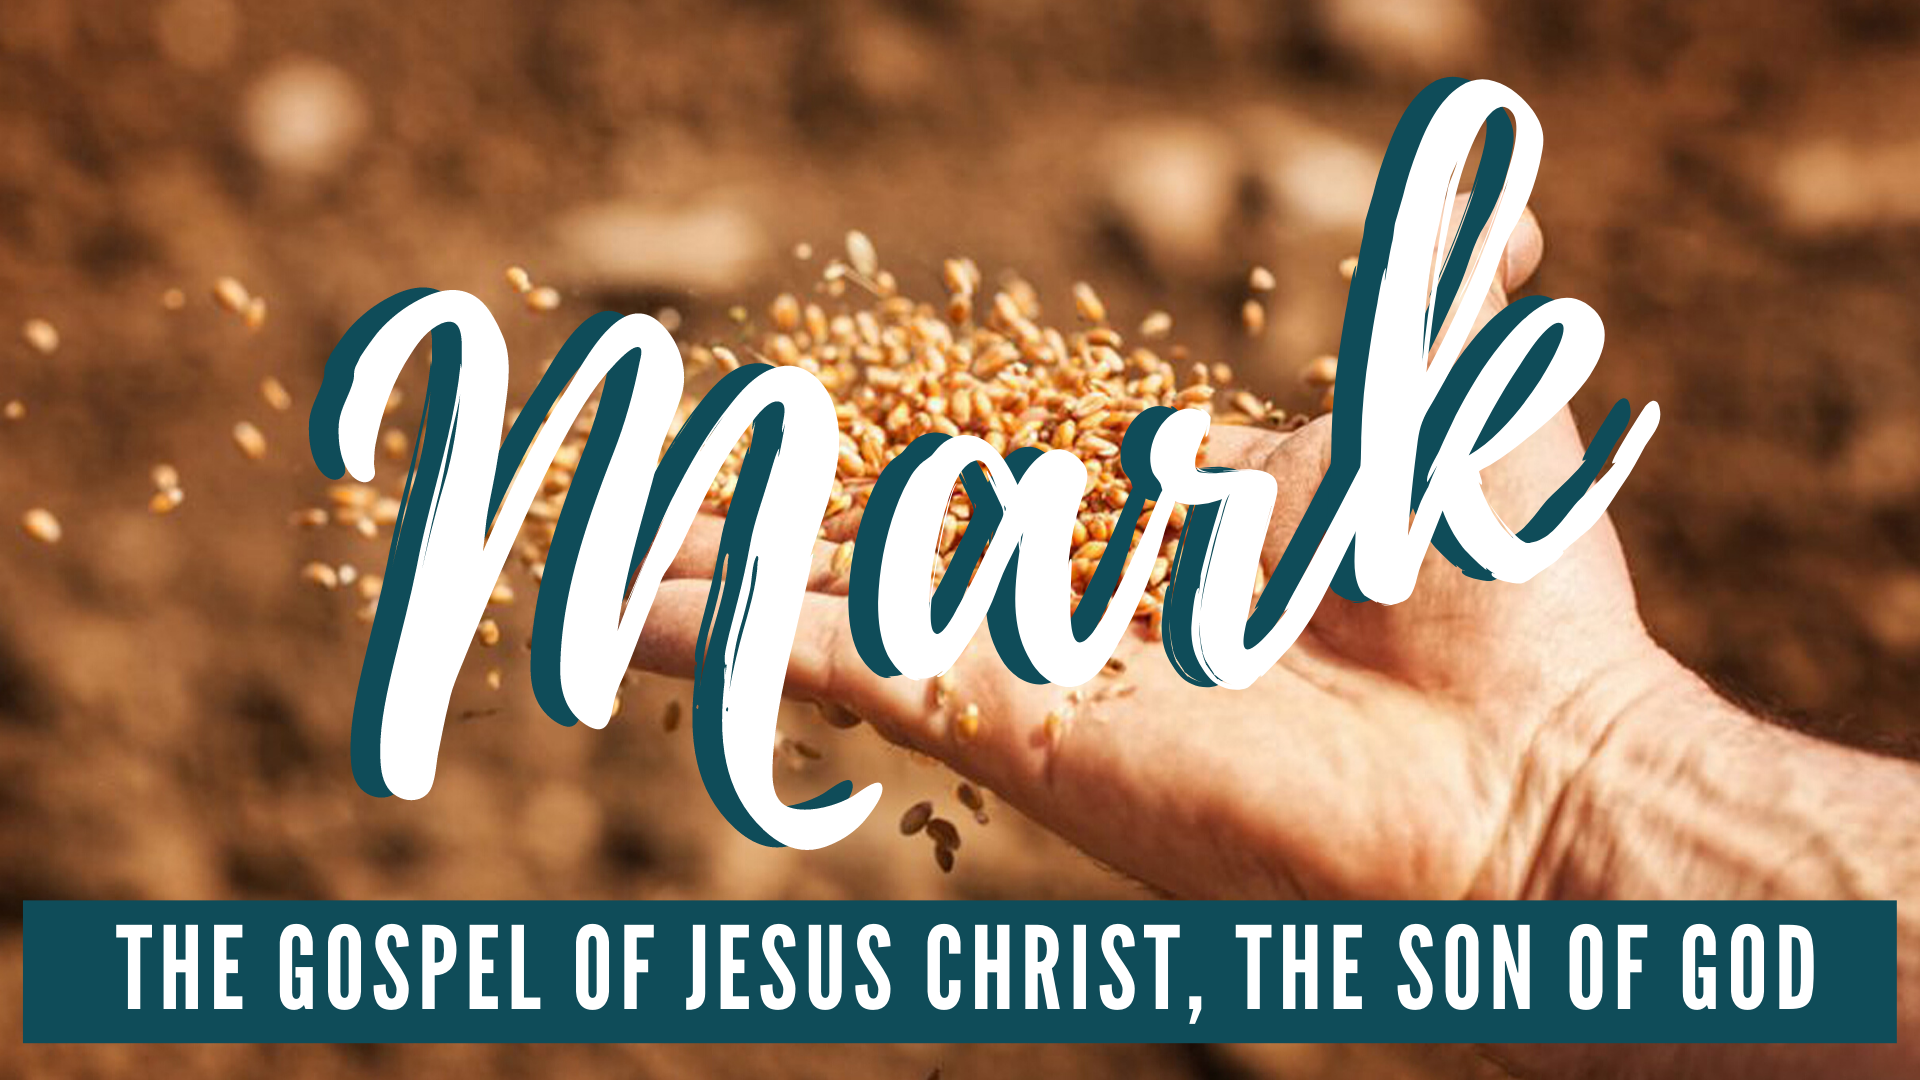 Mark: The Gospel of Jesus Christ, Son of God